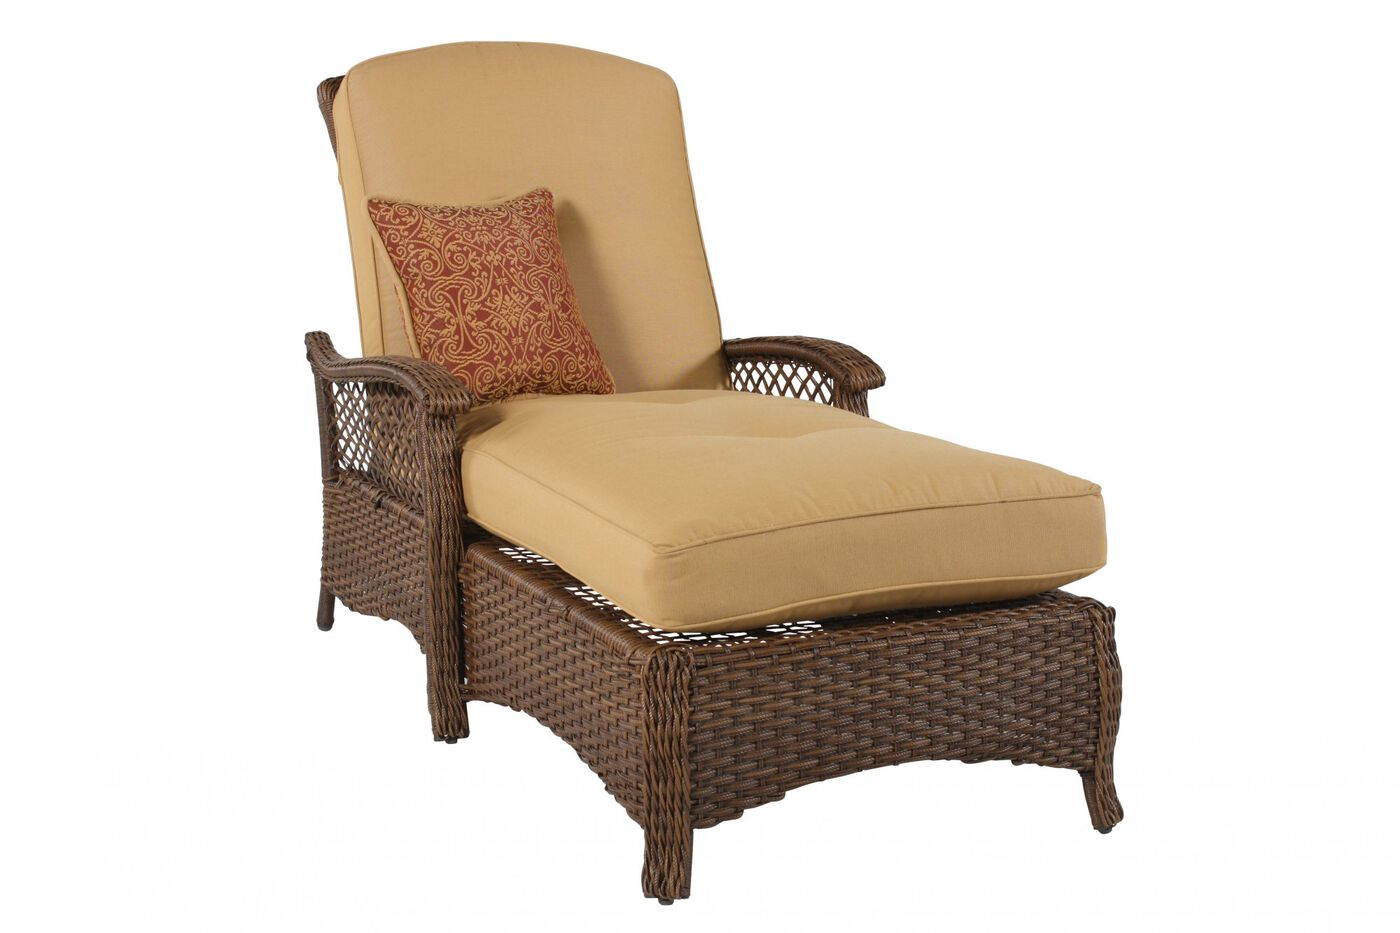 100 agio patio furniture chaise lounge toscana outdoor for Agio wicker chaise lounge